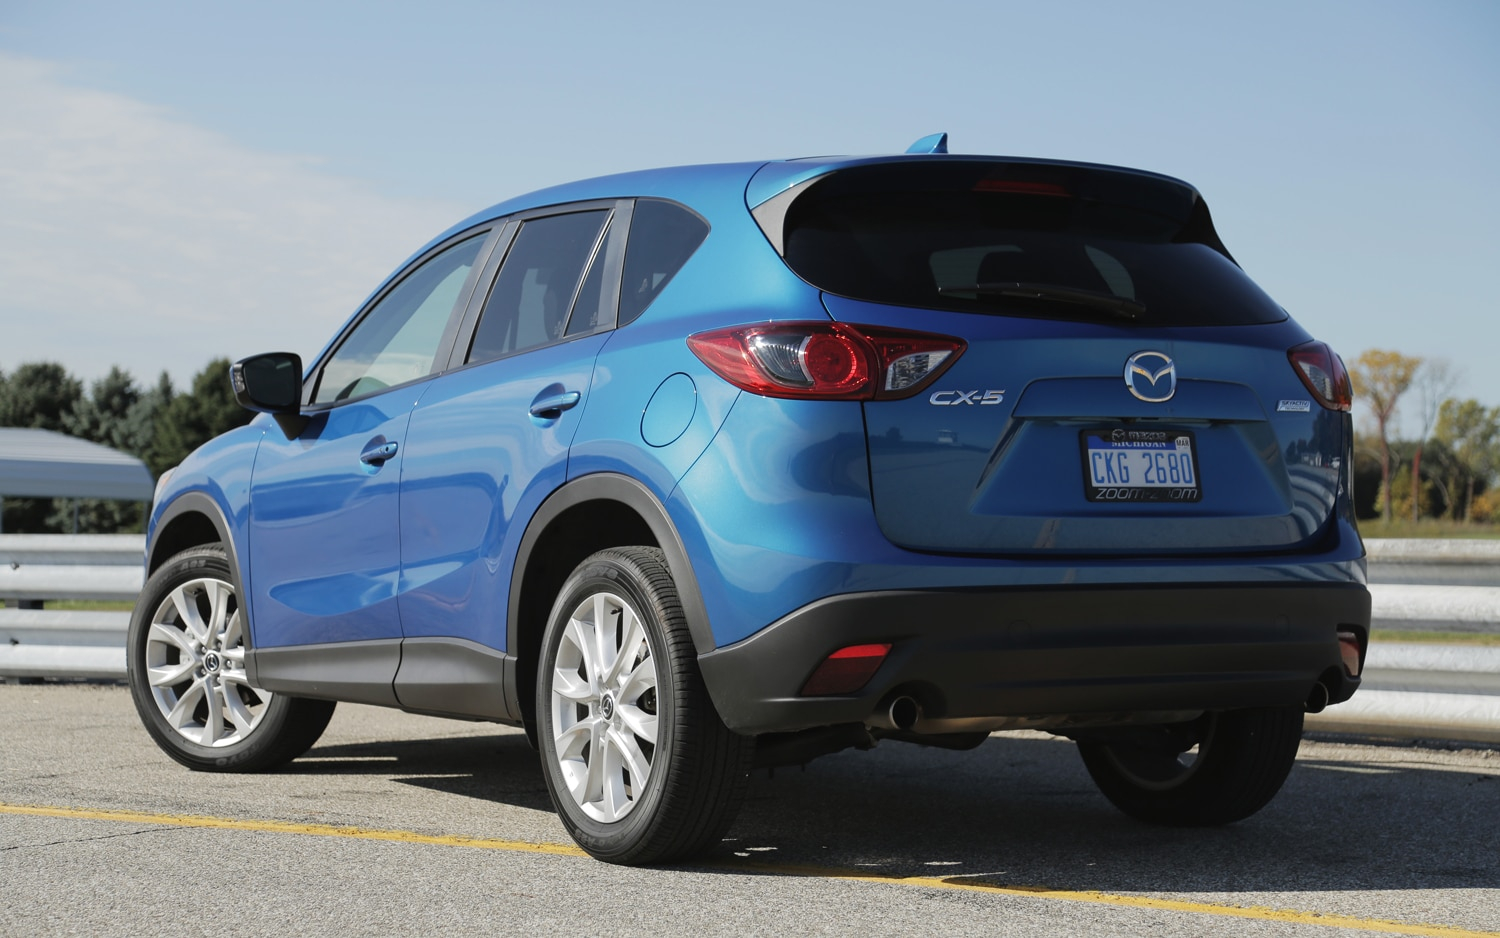 2013 Mazda Cx 5 Touring Rear Related Keywords amp Suggestions